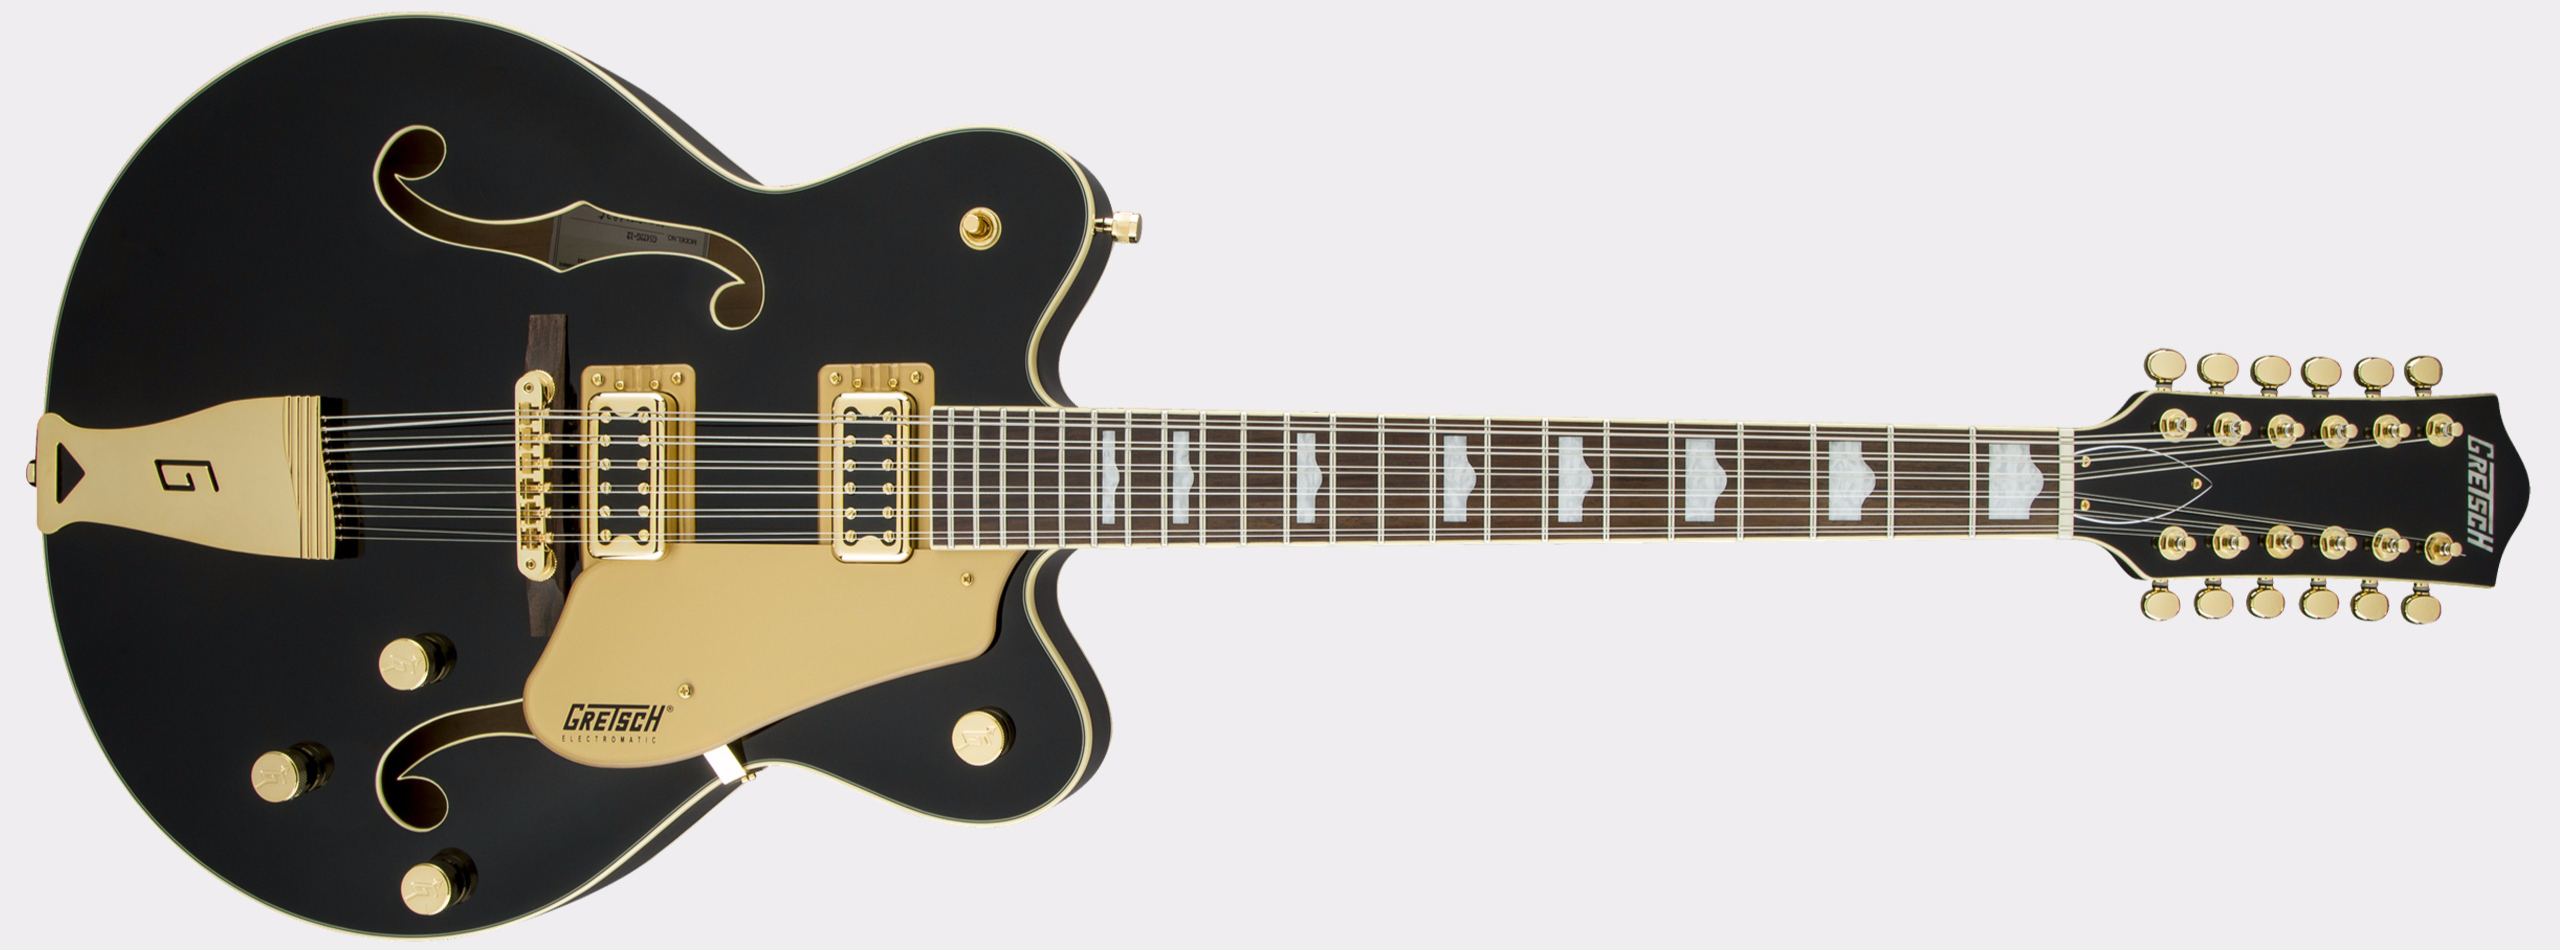 GRETSCH G5422G-12 Electromatic Hollow Body Double-Cut 12-String Black